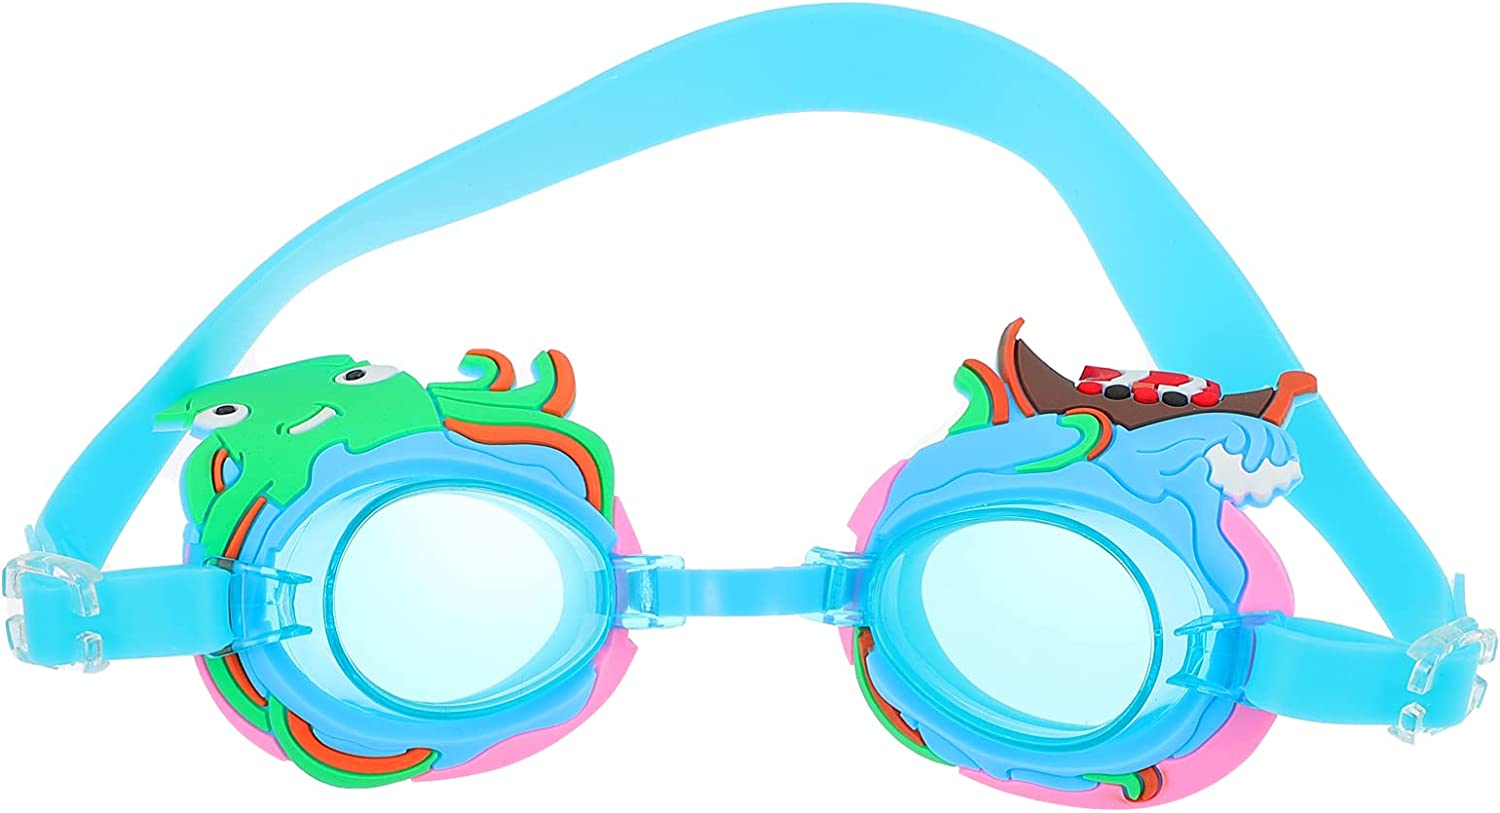 SOIMISS 1 Pair Super beauty product restock quality top Anti- Fog Swimming Goggles Max 47% OFF E Octopus Kid